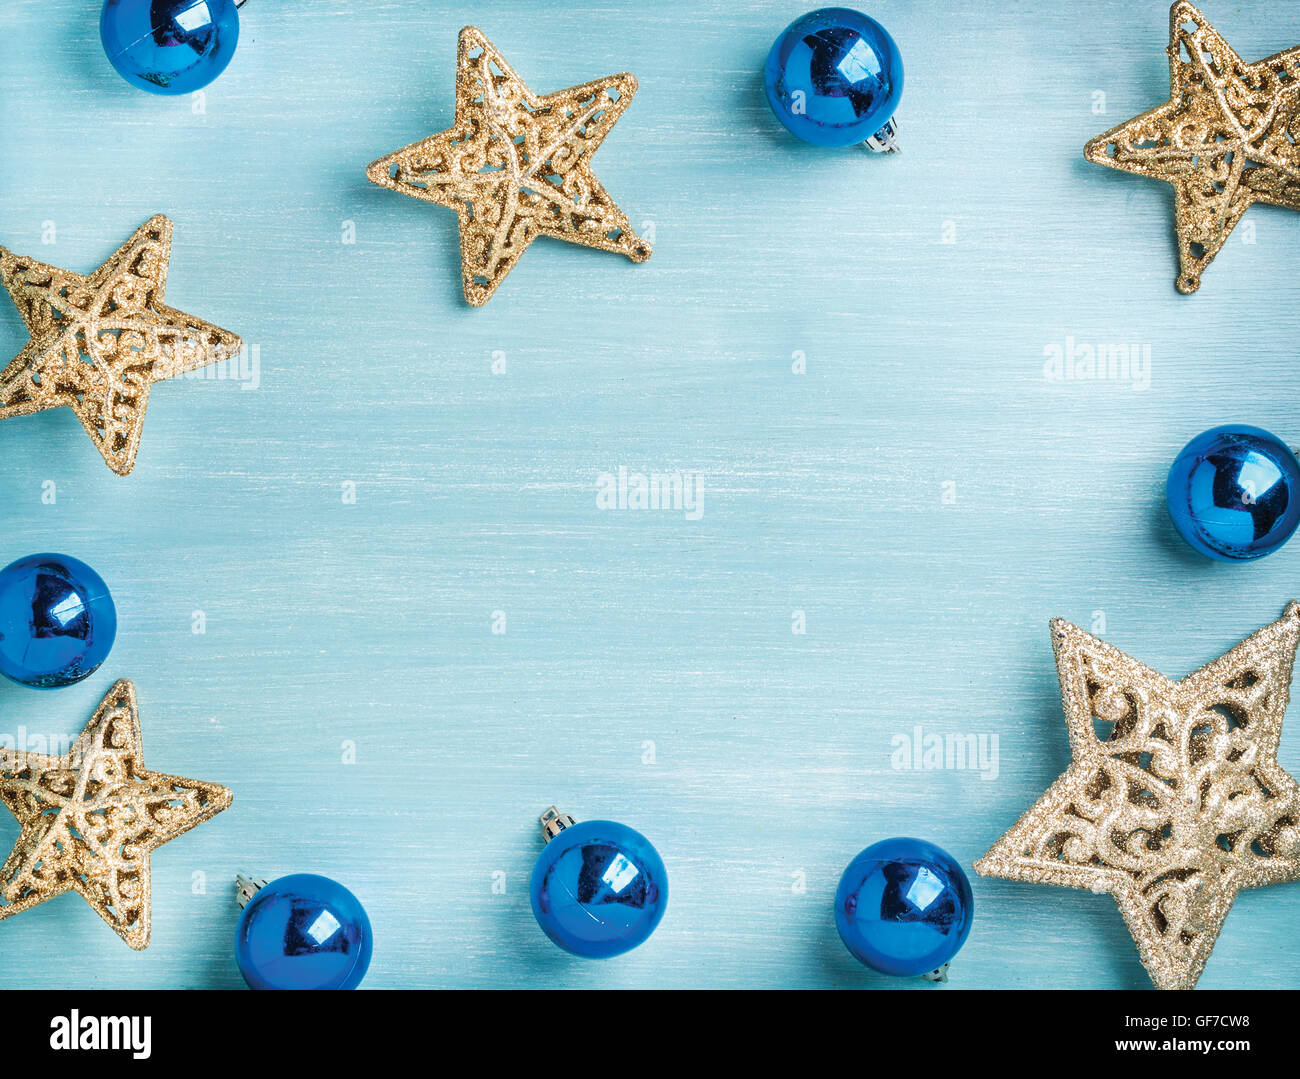 New Year or Christmas background: golden stars and blue glass balls over turquoise wooden backdrop, copy space Stock Photo